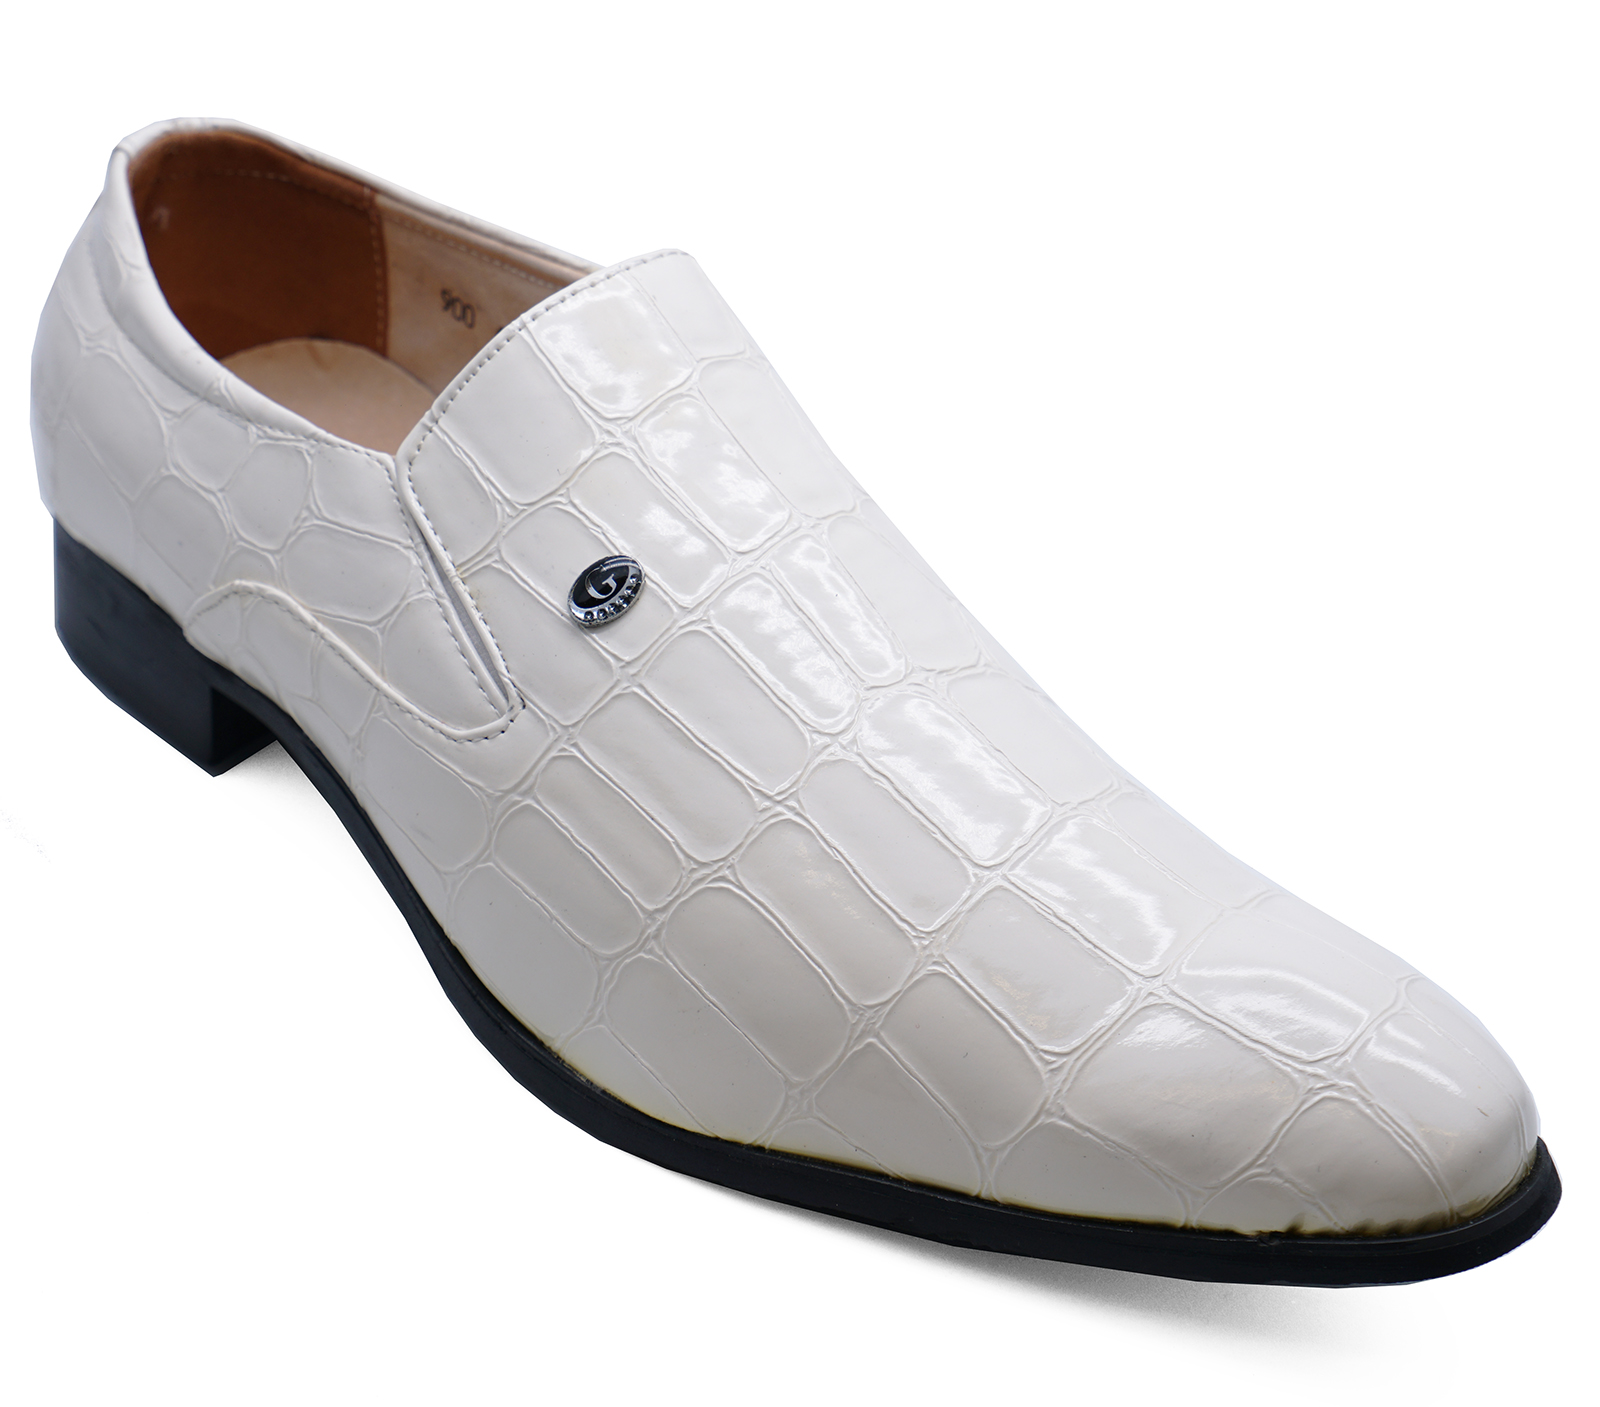 209ce6c6c52d Details about MENS WHITE SLIP-ON FAUX-CROC SMART CASUAL LOAFERS WEDDING  WORK SHOES UK 6-11